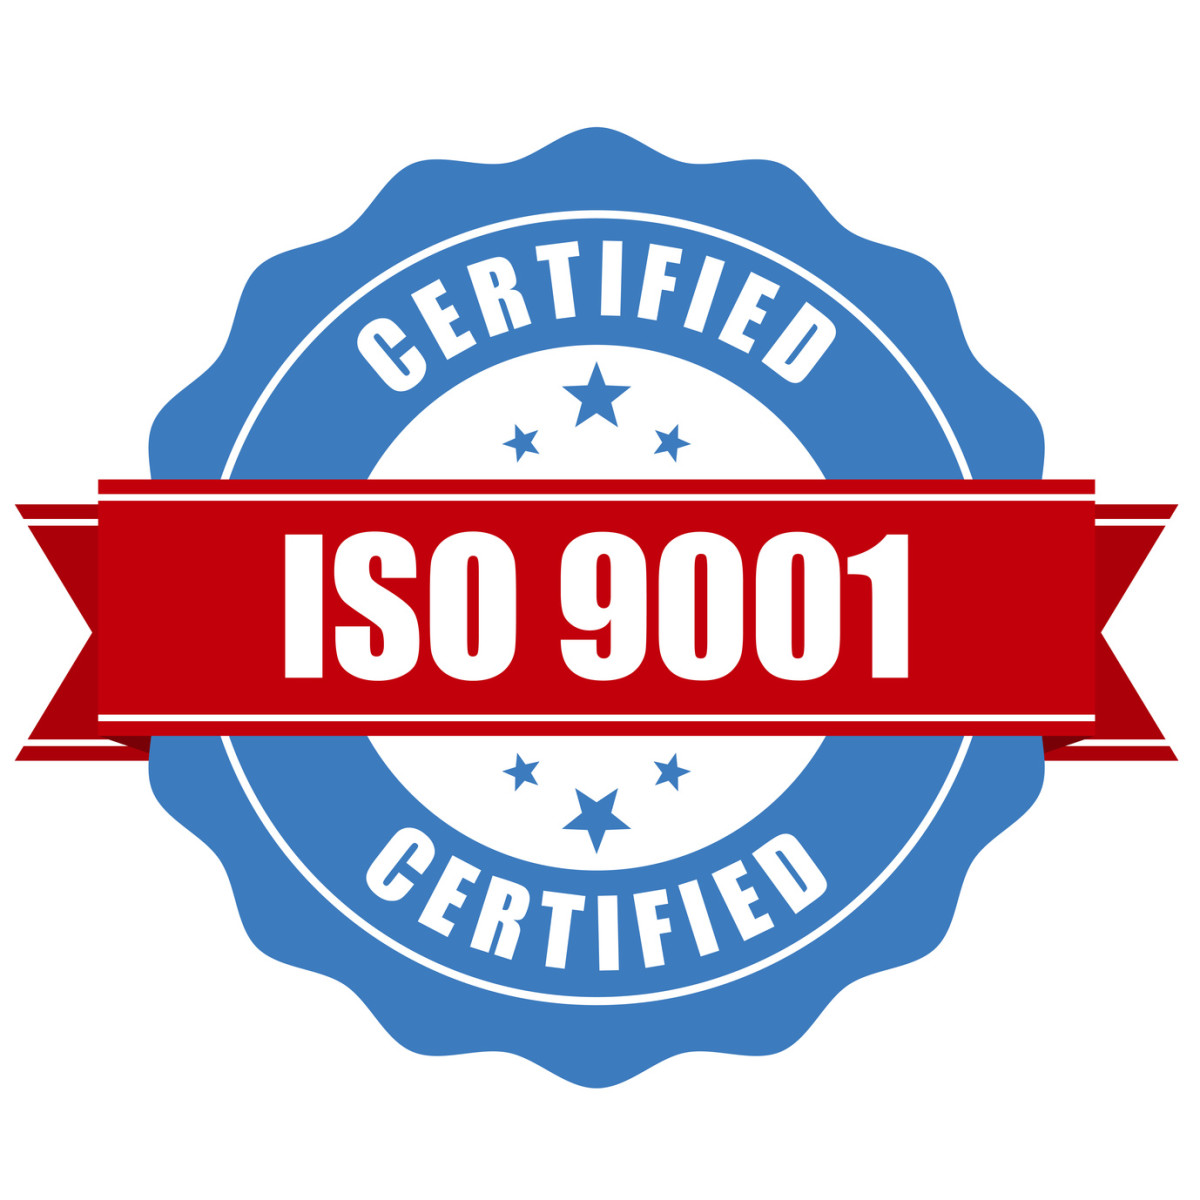 The ISO 9001 requirement is a QMS that companies use to help them consistently provide quality products and services that meet high standards.